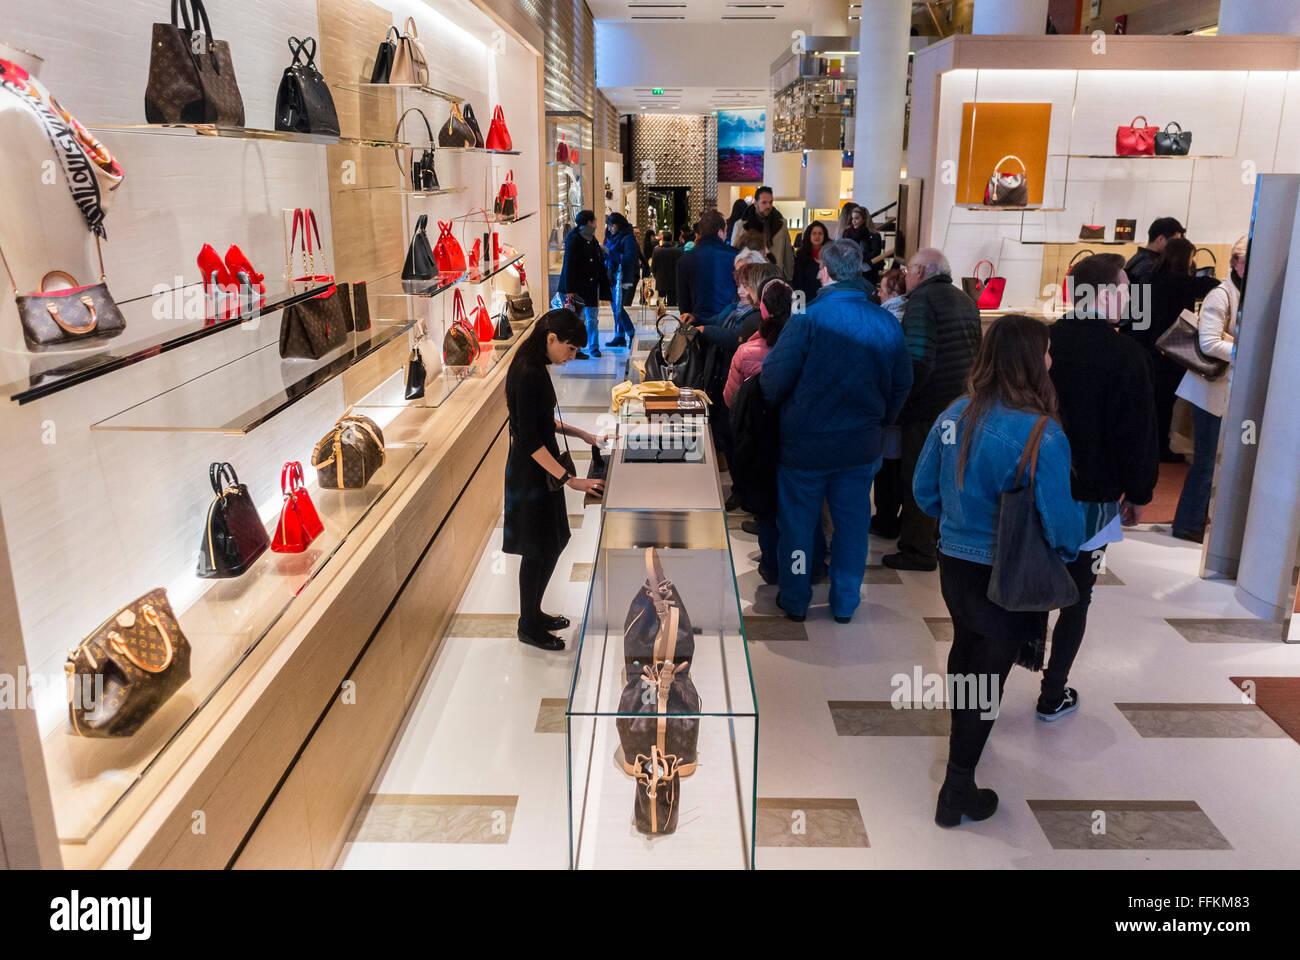 Fashion style Luxury stocks look up to LVMH: the French group sets an upbeat tone for the industry for woman